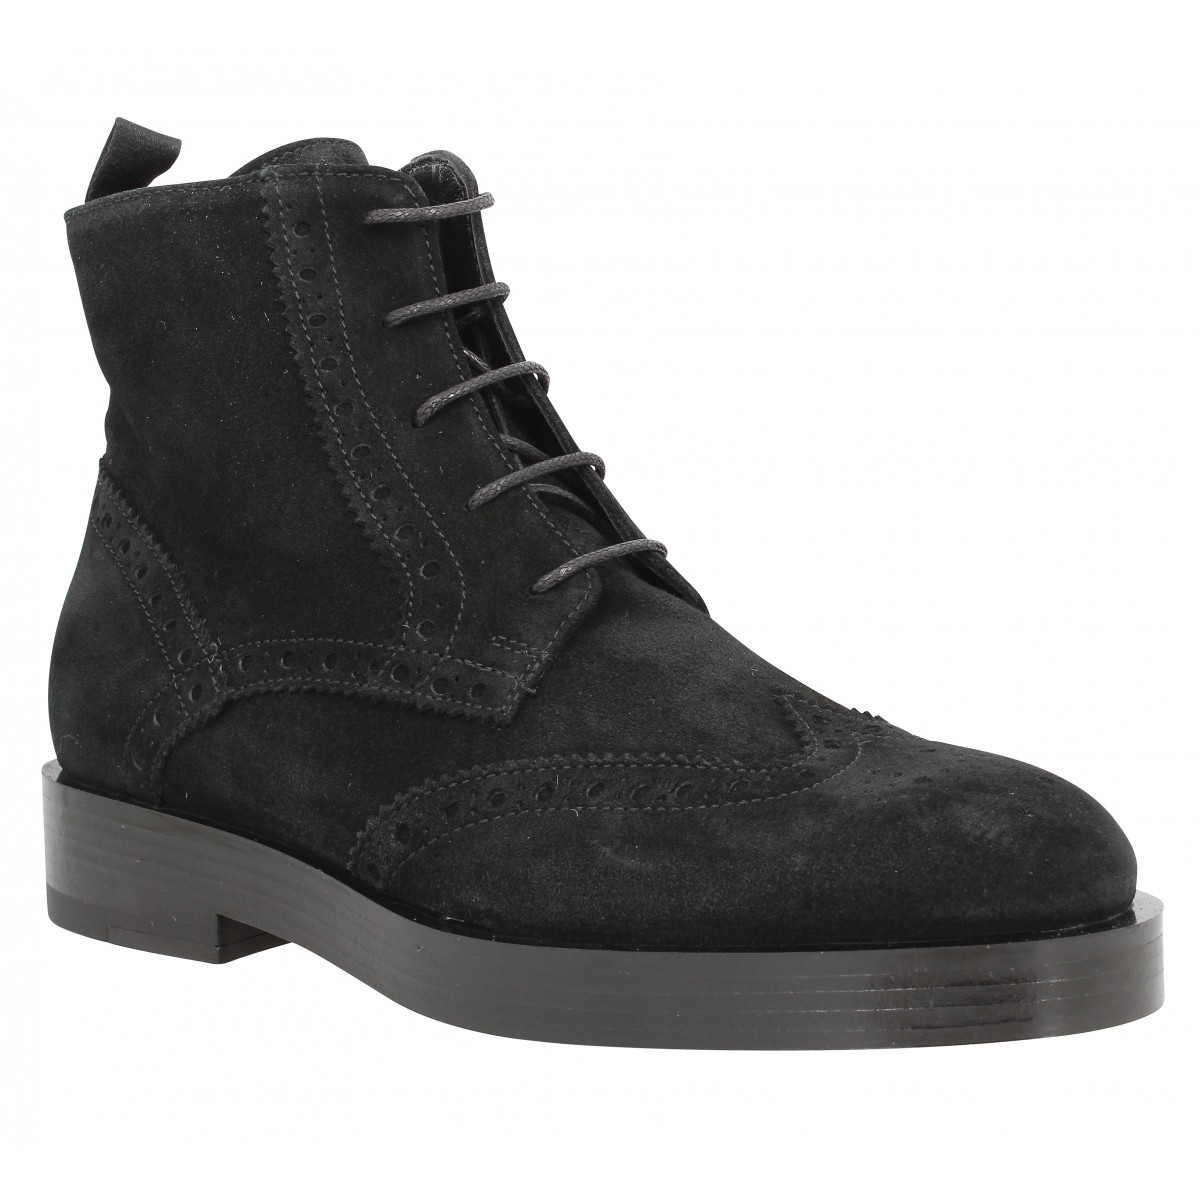 Bottines TRIVER FLIGHT 188 16 velours Noir